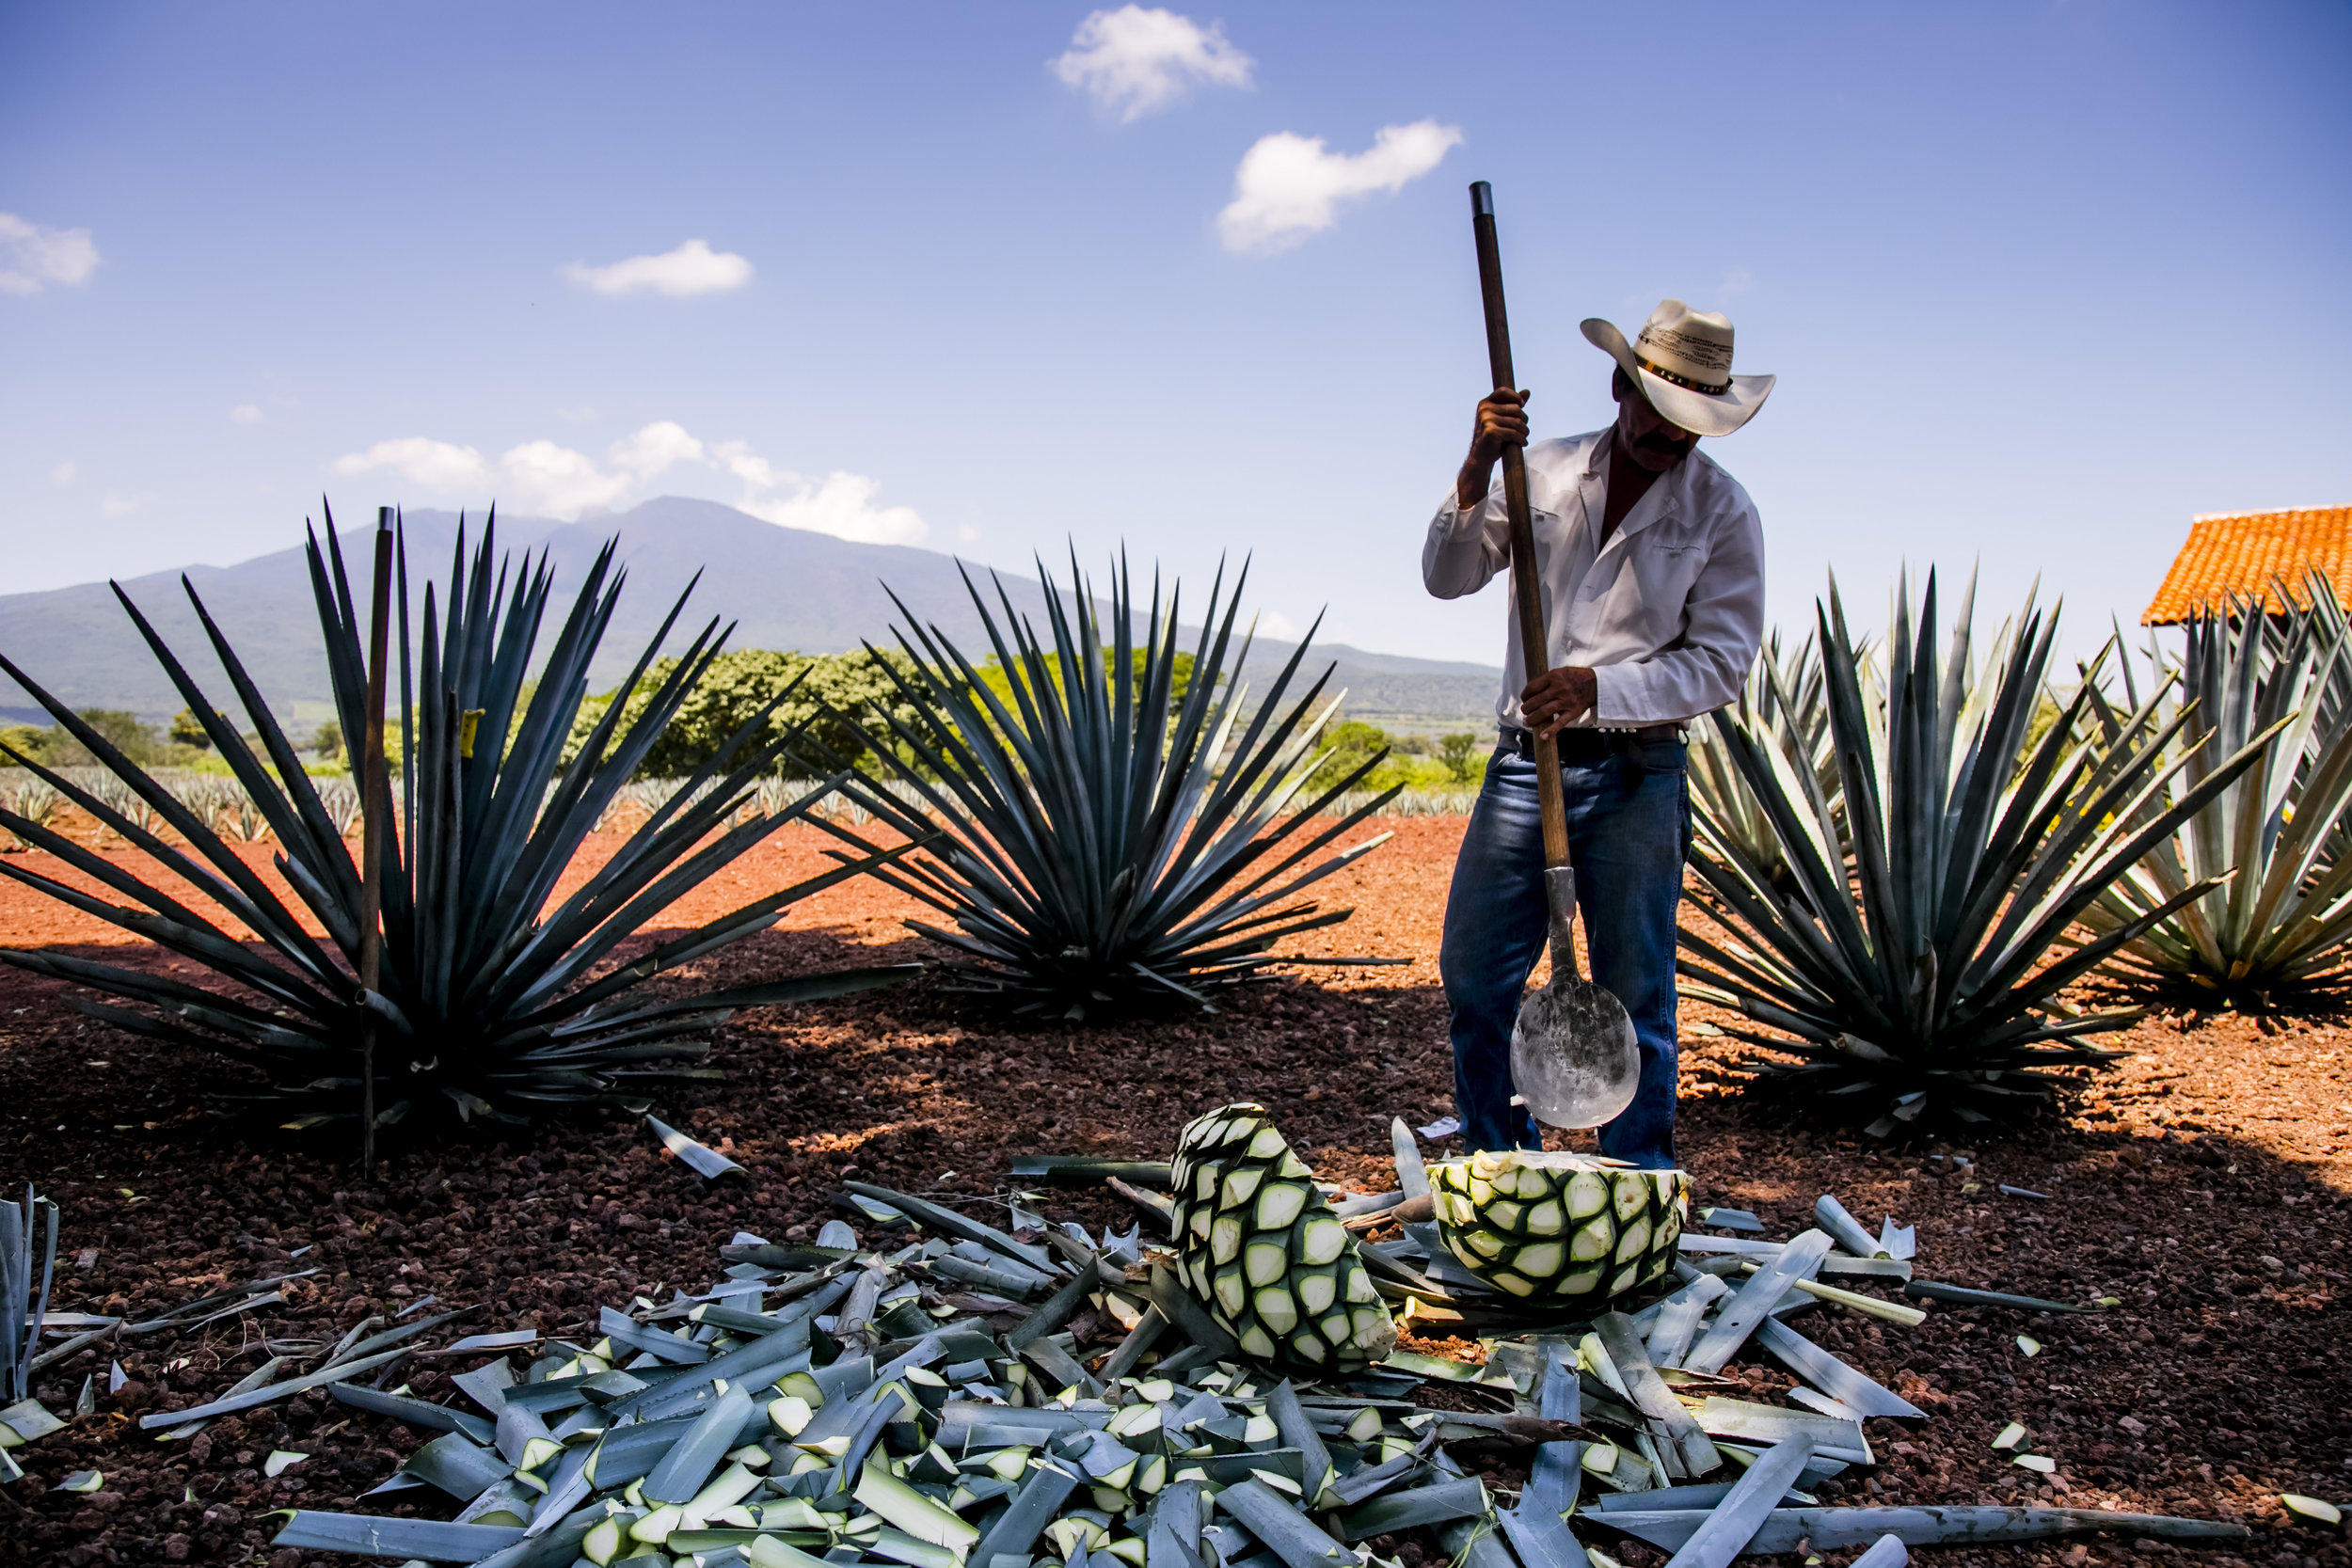 VincentIsore_Tequila014.JPG